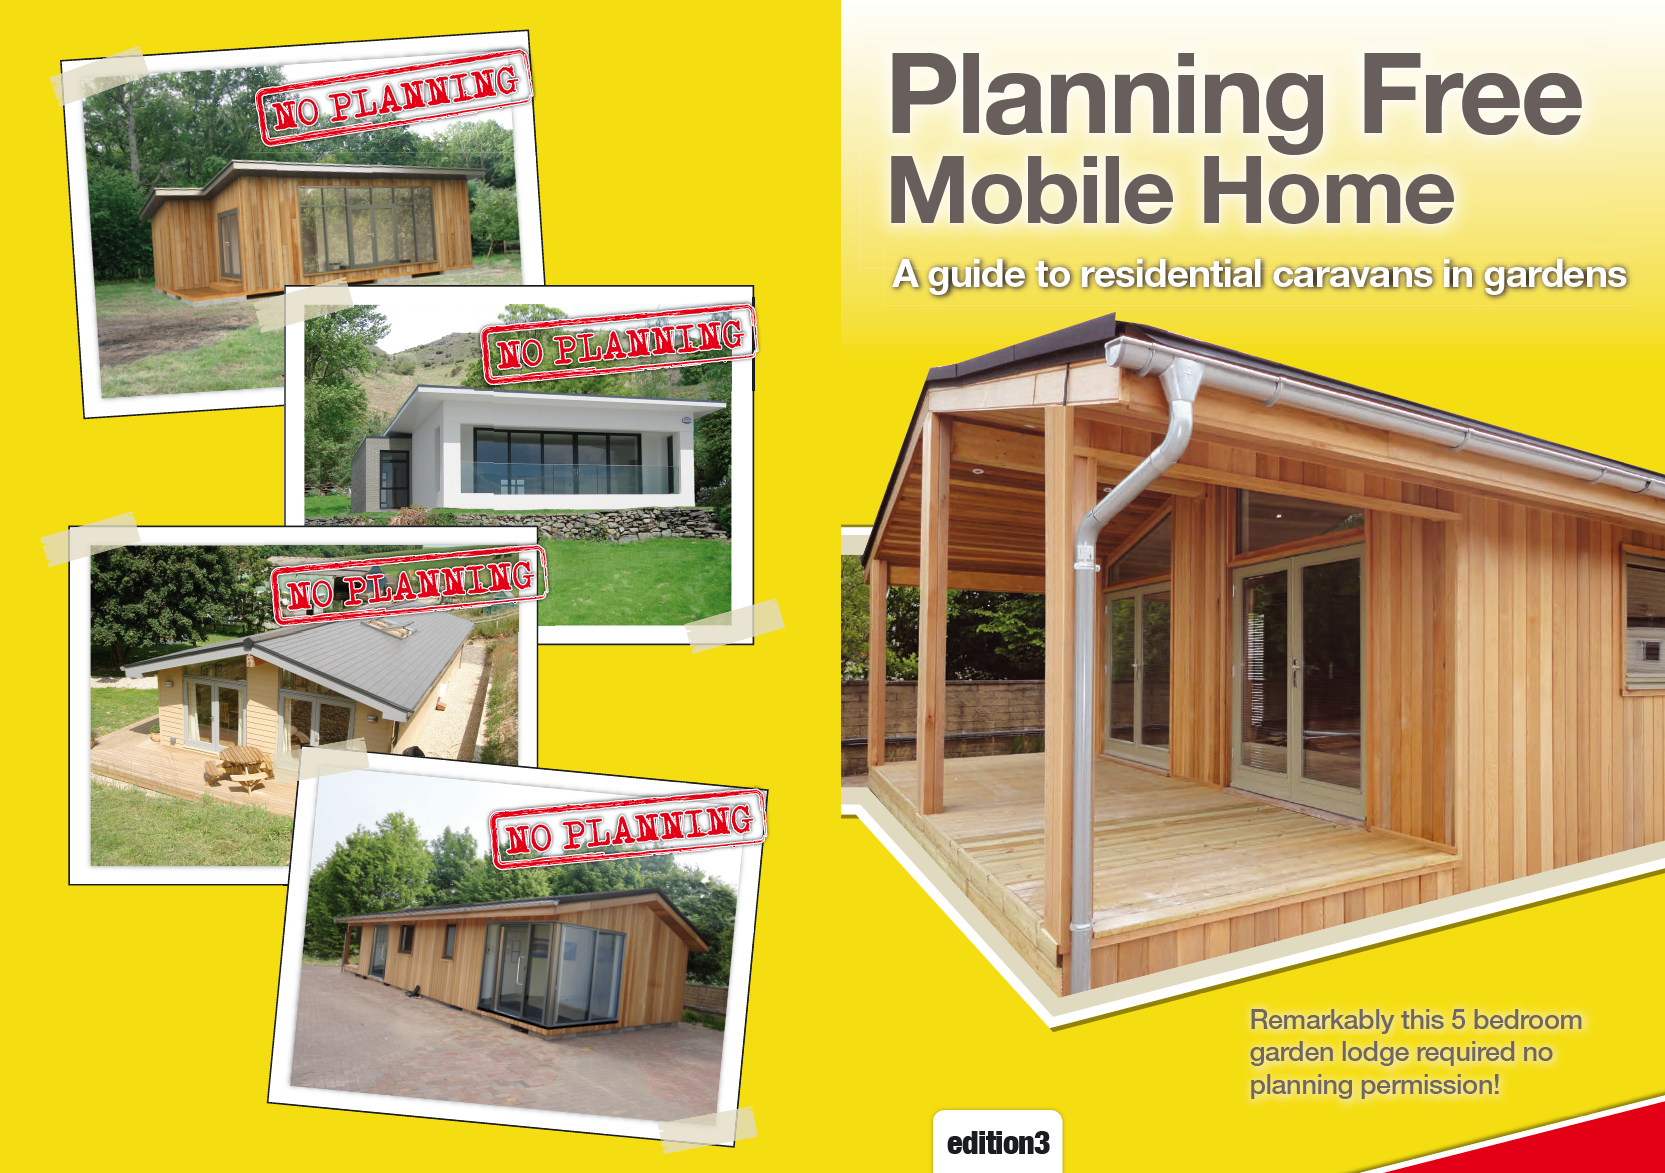 PlanningFreeMobileHomes planning permission log cabin homes photo home design,Planning Permission For Log Cabin Homes